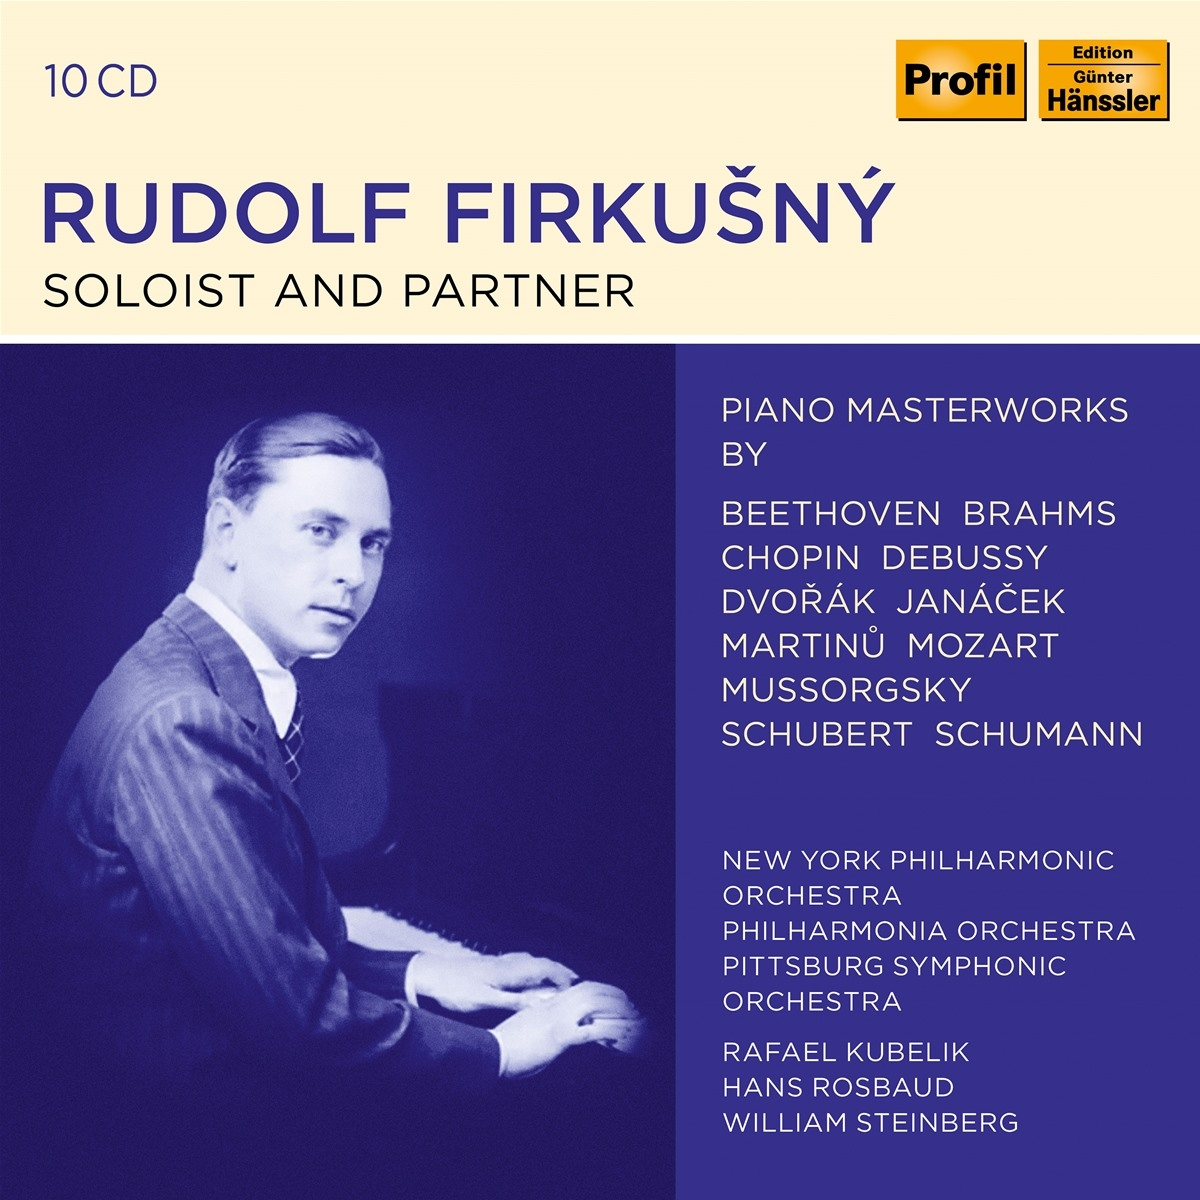 Rudolf Firkusny - Soloist and Partner